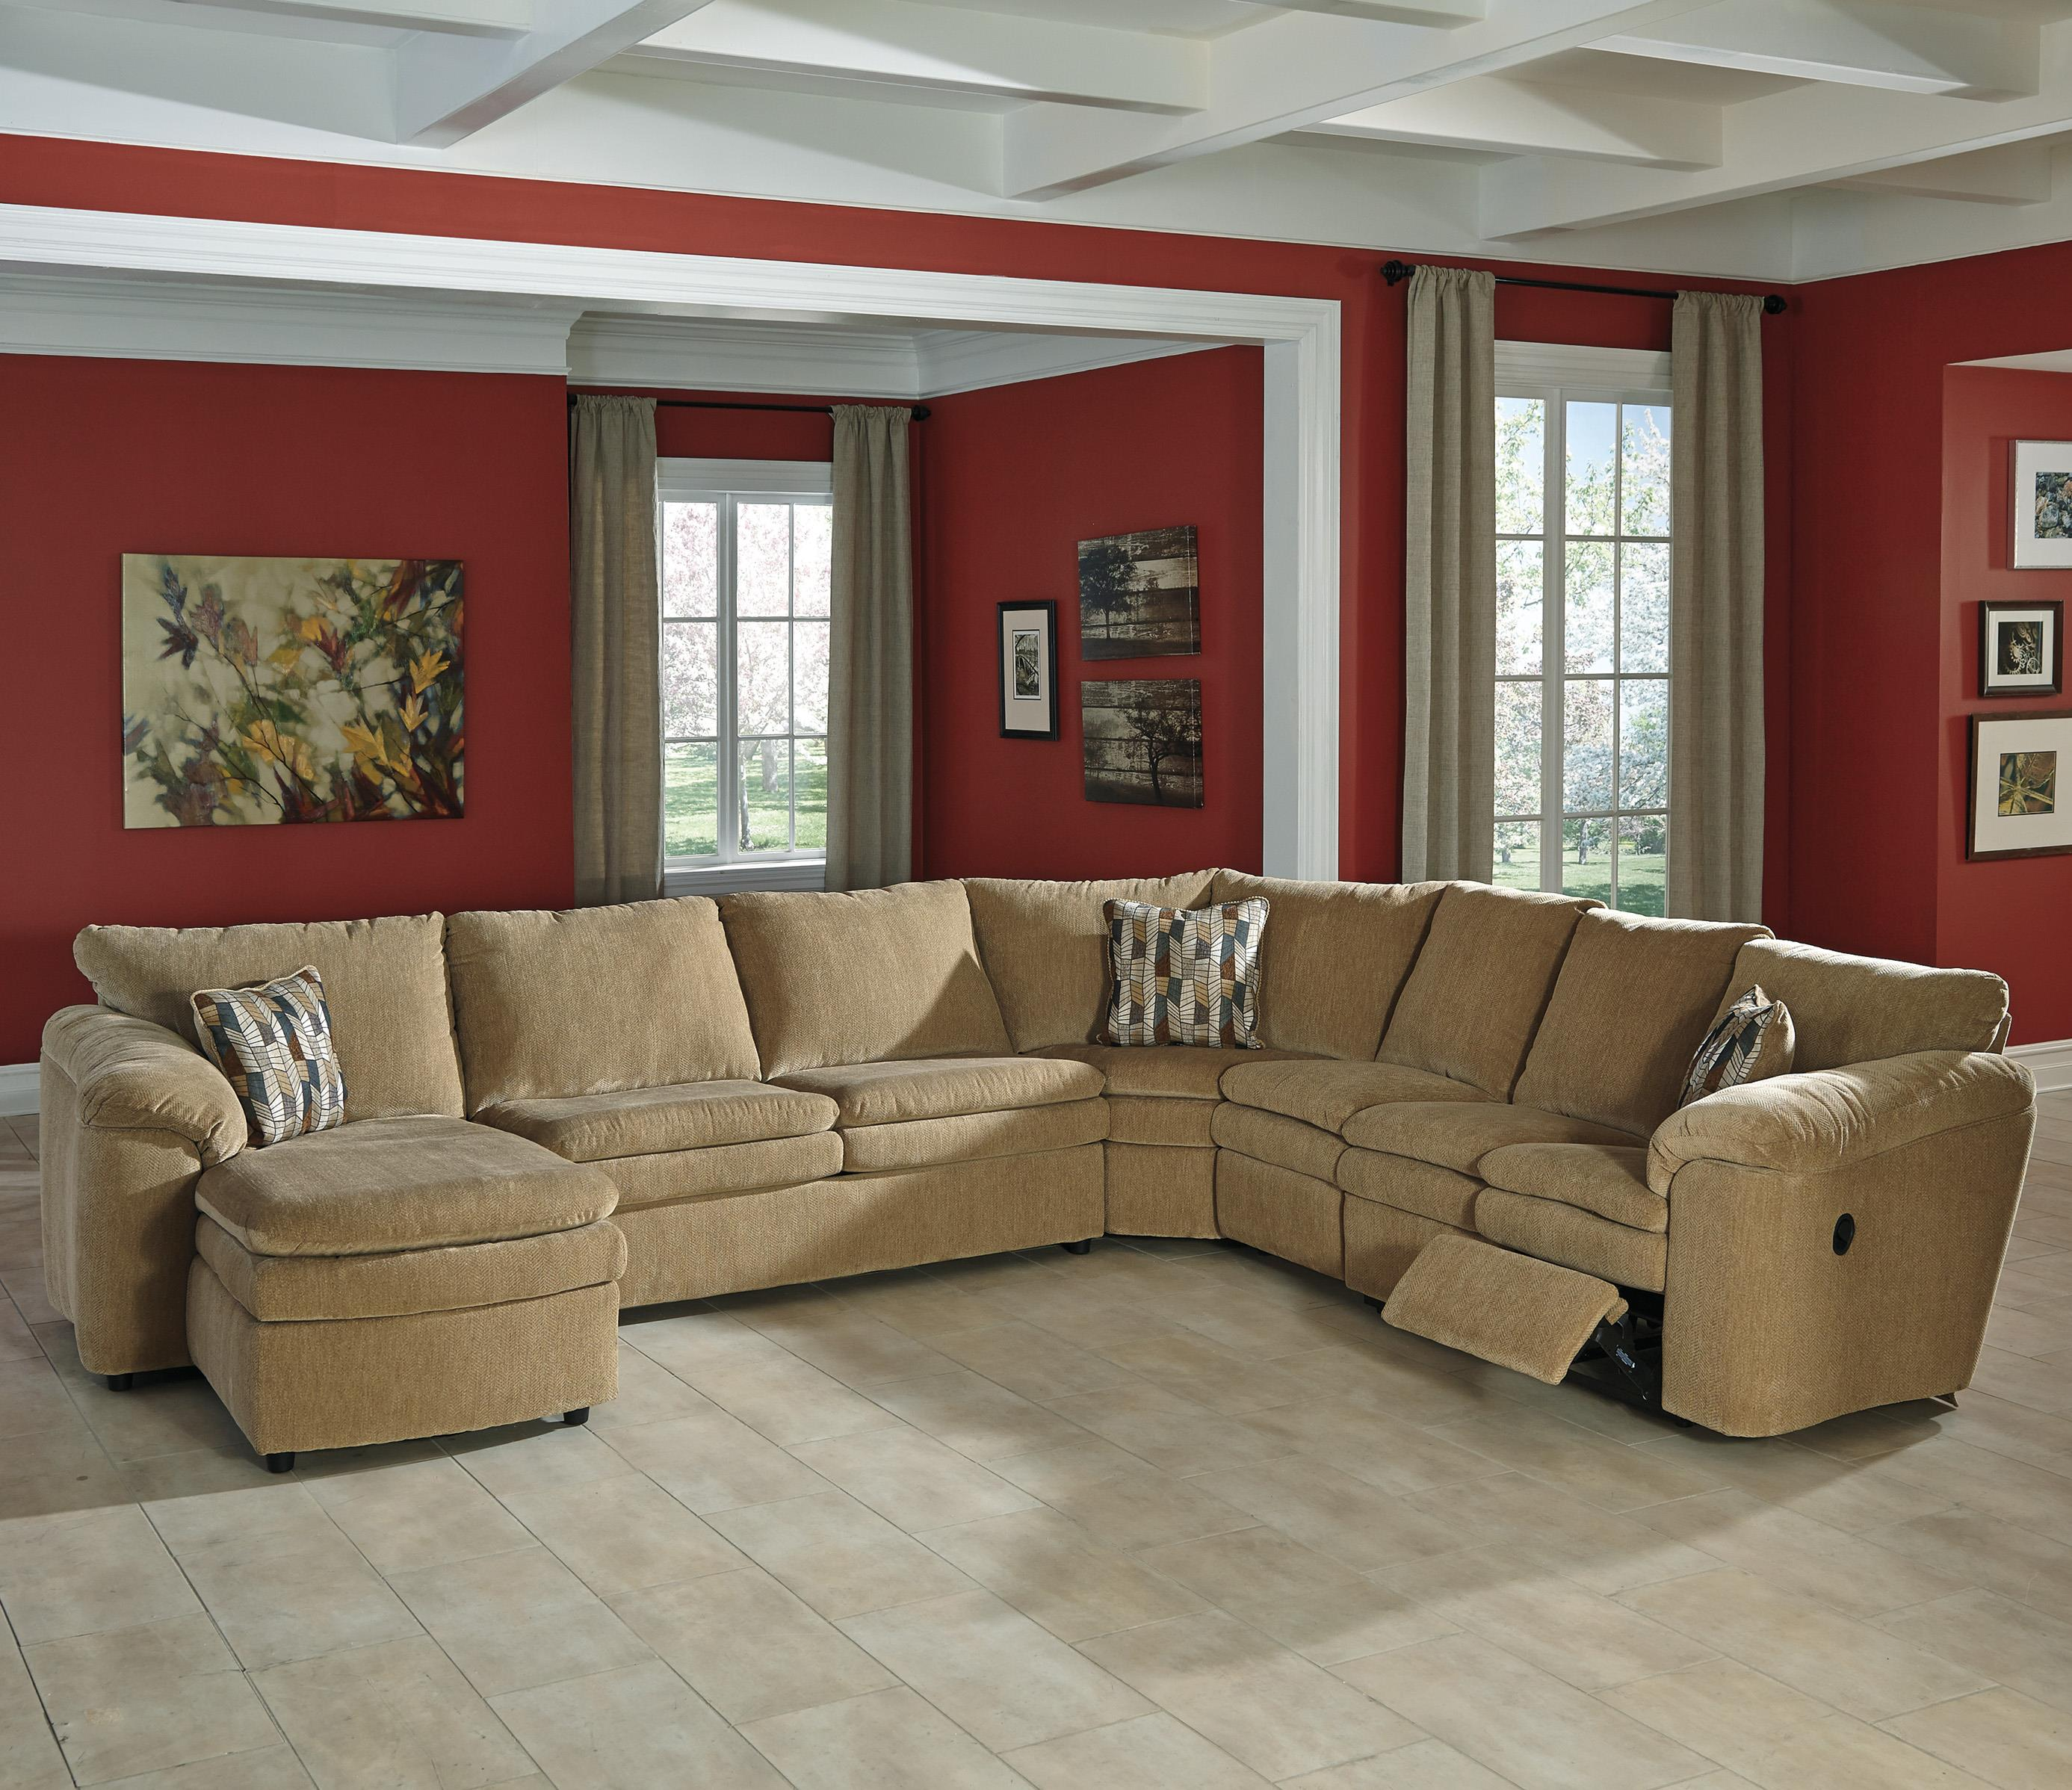 Signature Design by Ashley Coats 5-Piece Recl. Sectional w/ Chaise & Sleeper - Item Number: 4410016+71+77+46+85